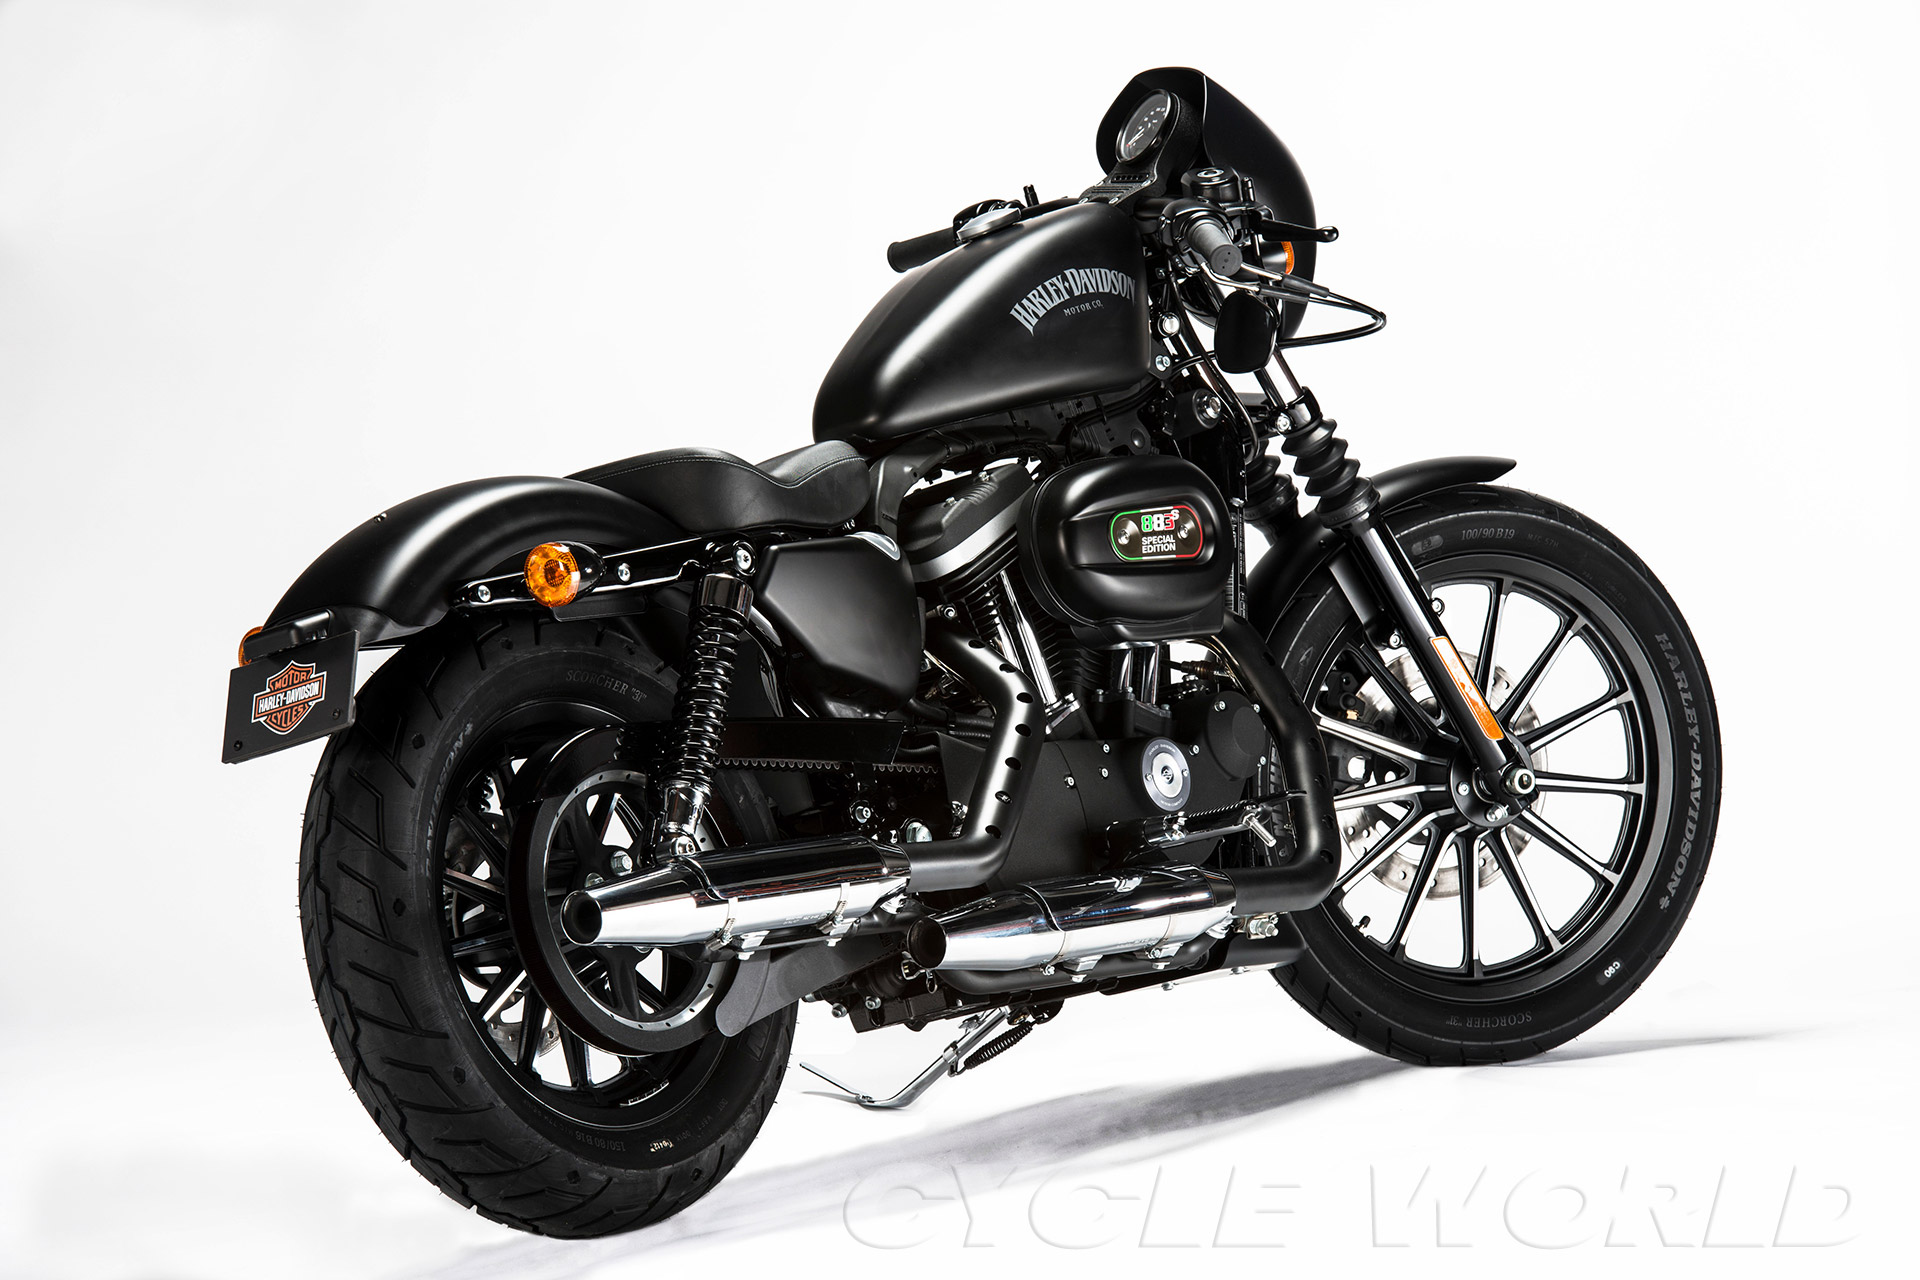 Auto and Cycle 2013 HARLEY-DAVIDSON SPORTSTER IRON 883 SPECIAL EDITION S – FIRST LOOK.  Article by Bruno dePrato on May 9, 2013